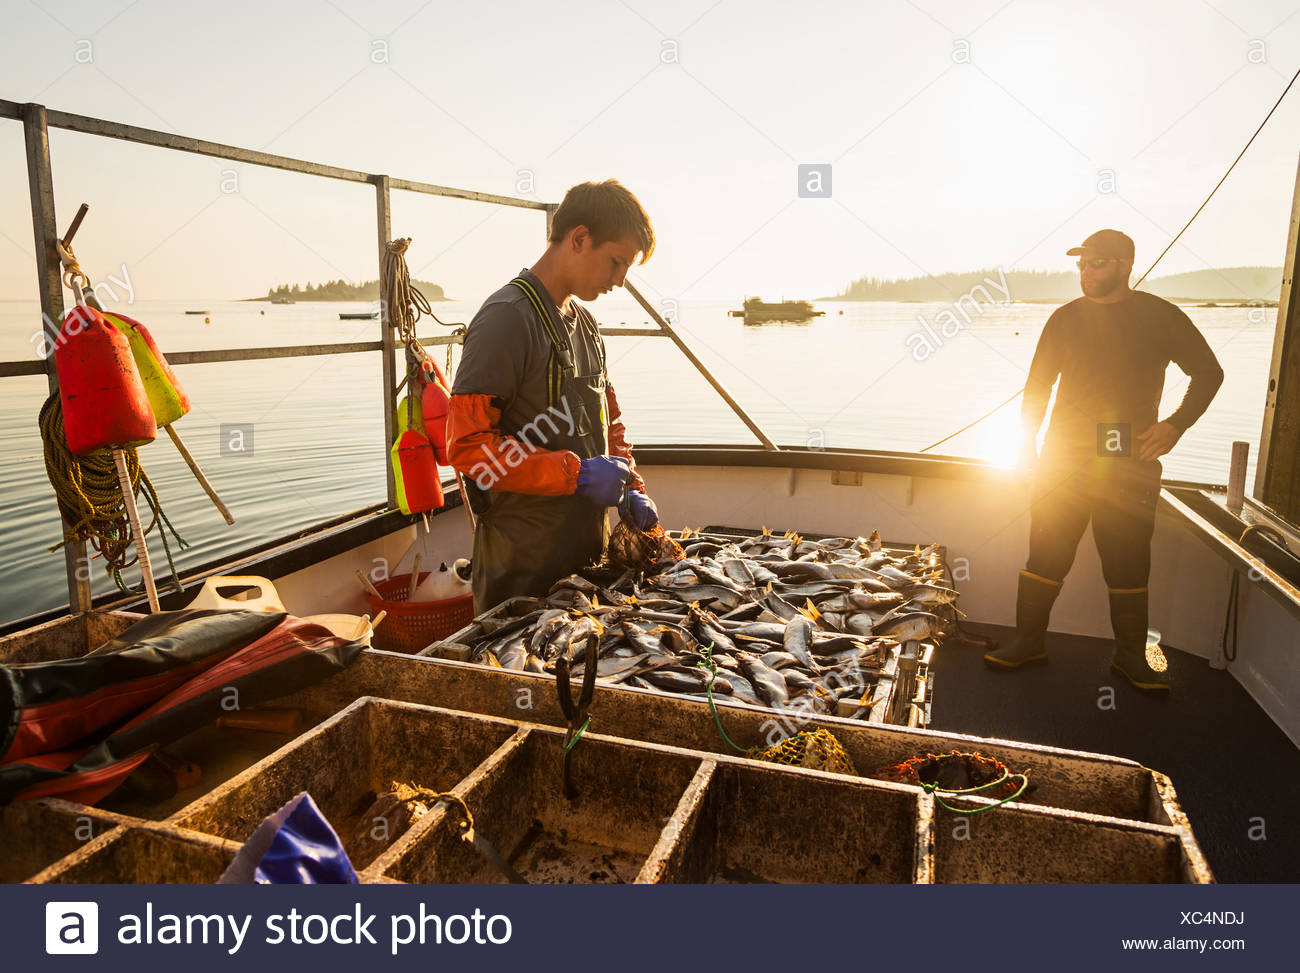 Two fishermen working on boat - Stock Image